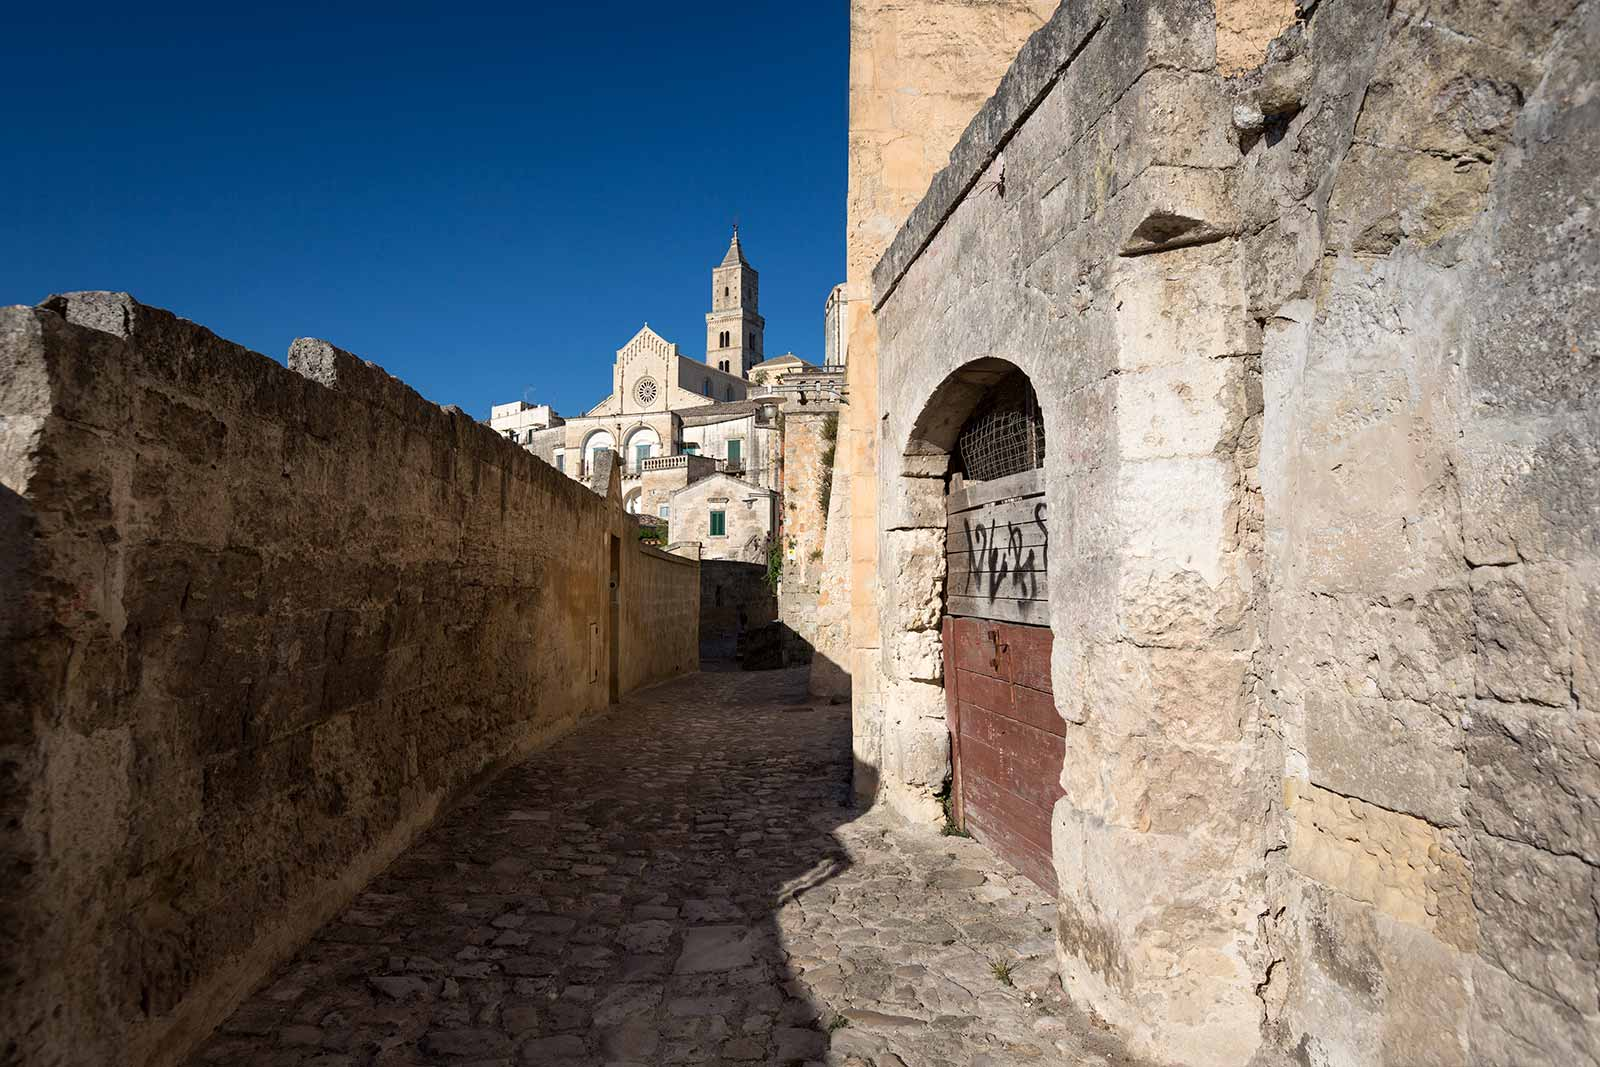 Welcome to the real Flinstones village. The ancient Sassi di Matera is believed to be the oldest continuously inhabited cave city in the world.